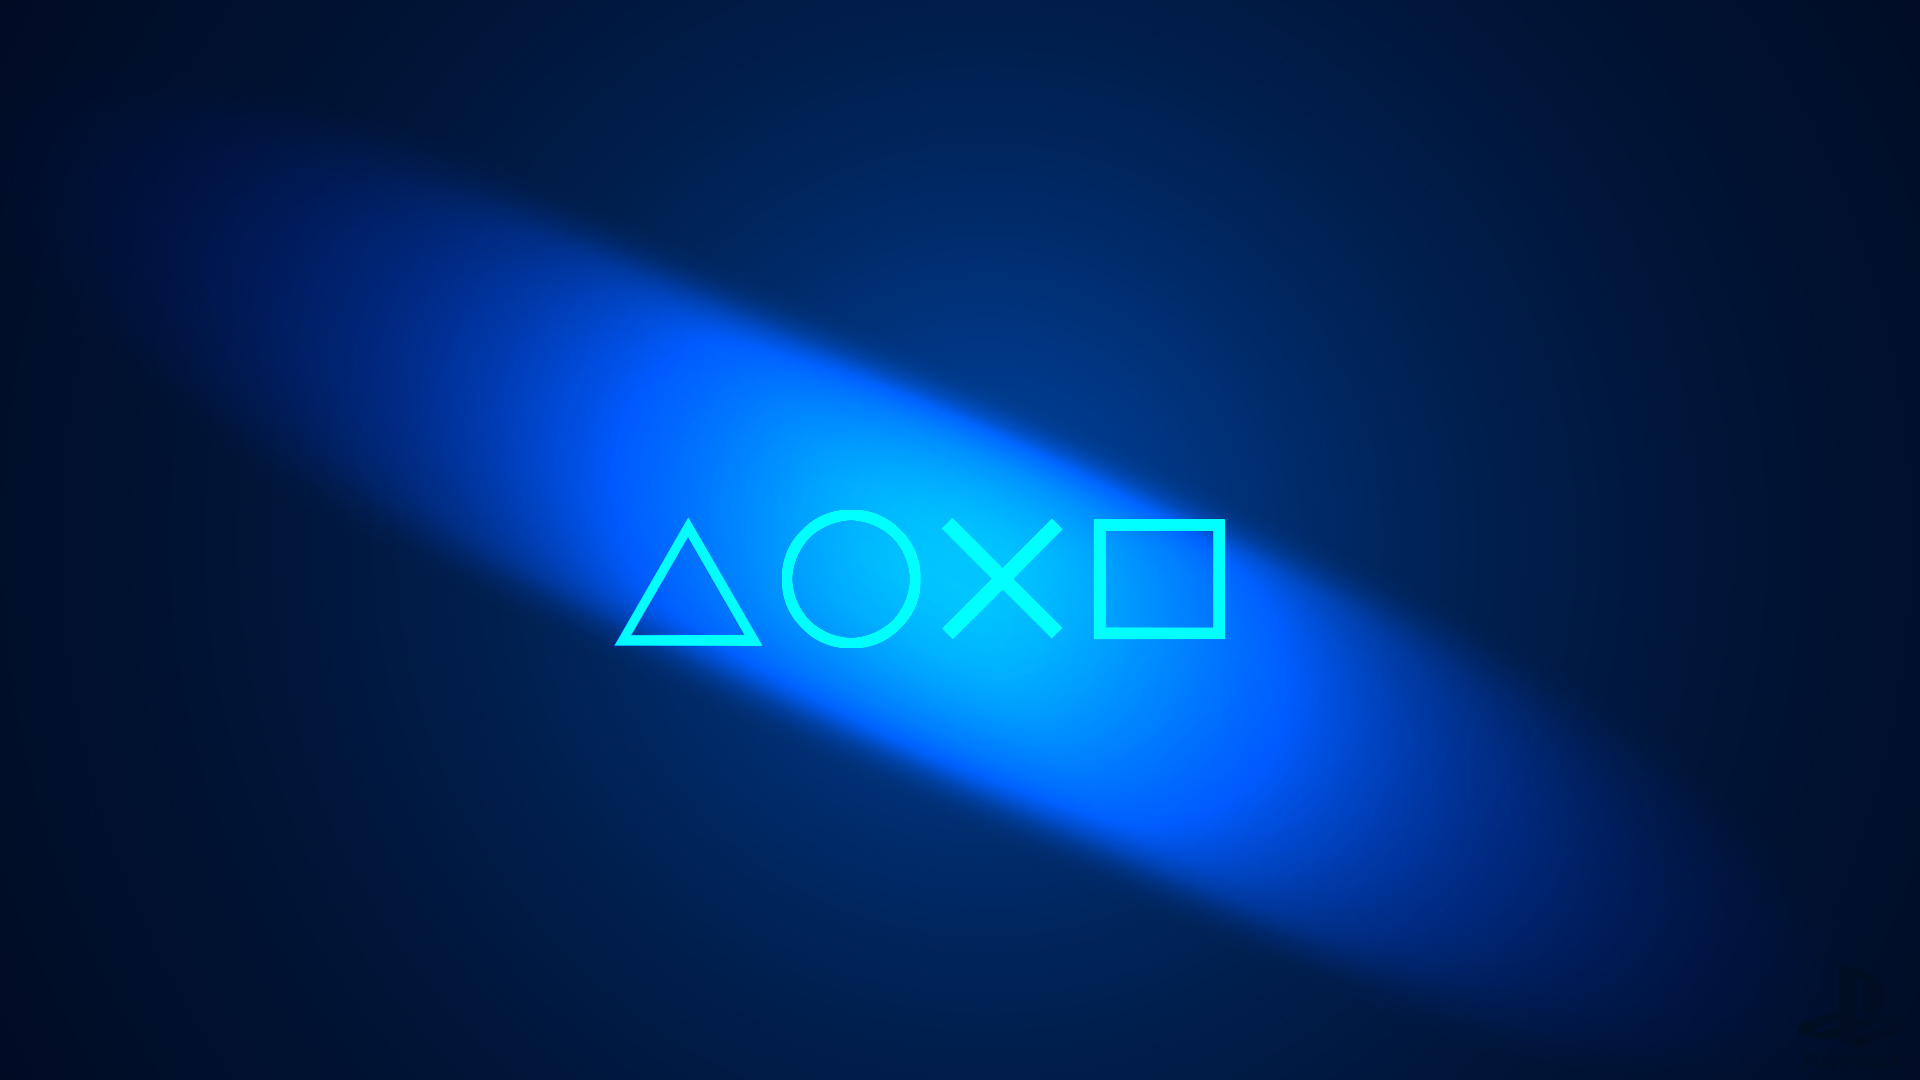 Download Wallpaper Round Sony Ps3 Cross Triangle Playstation